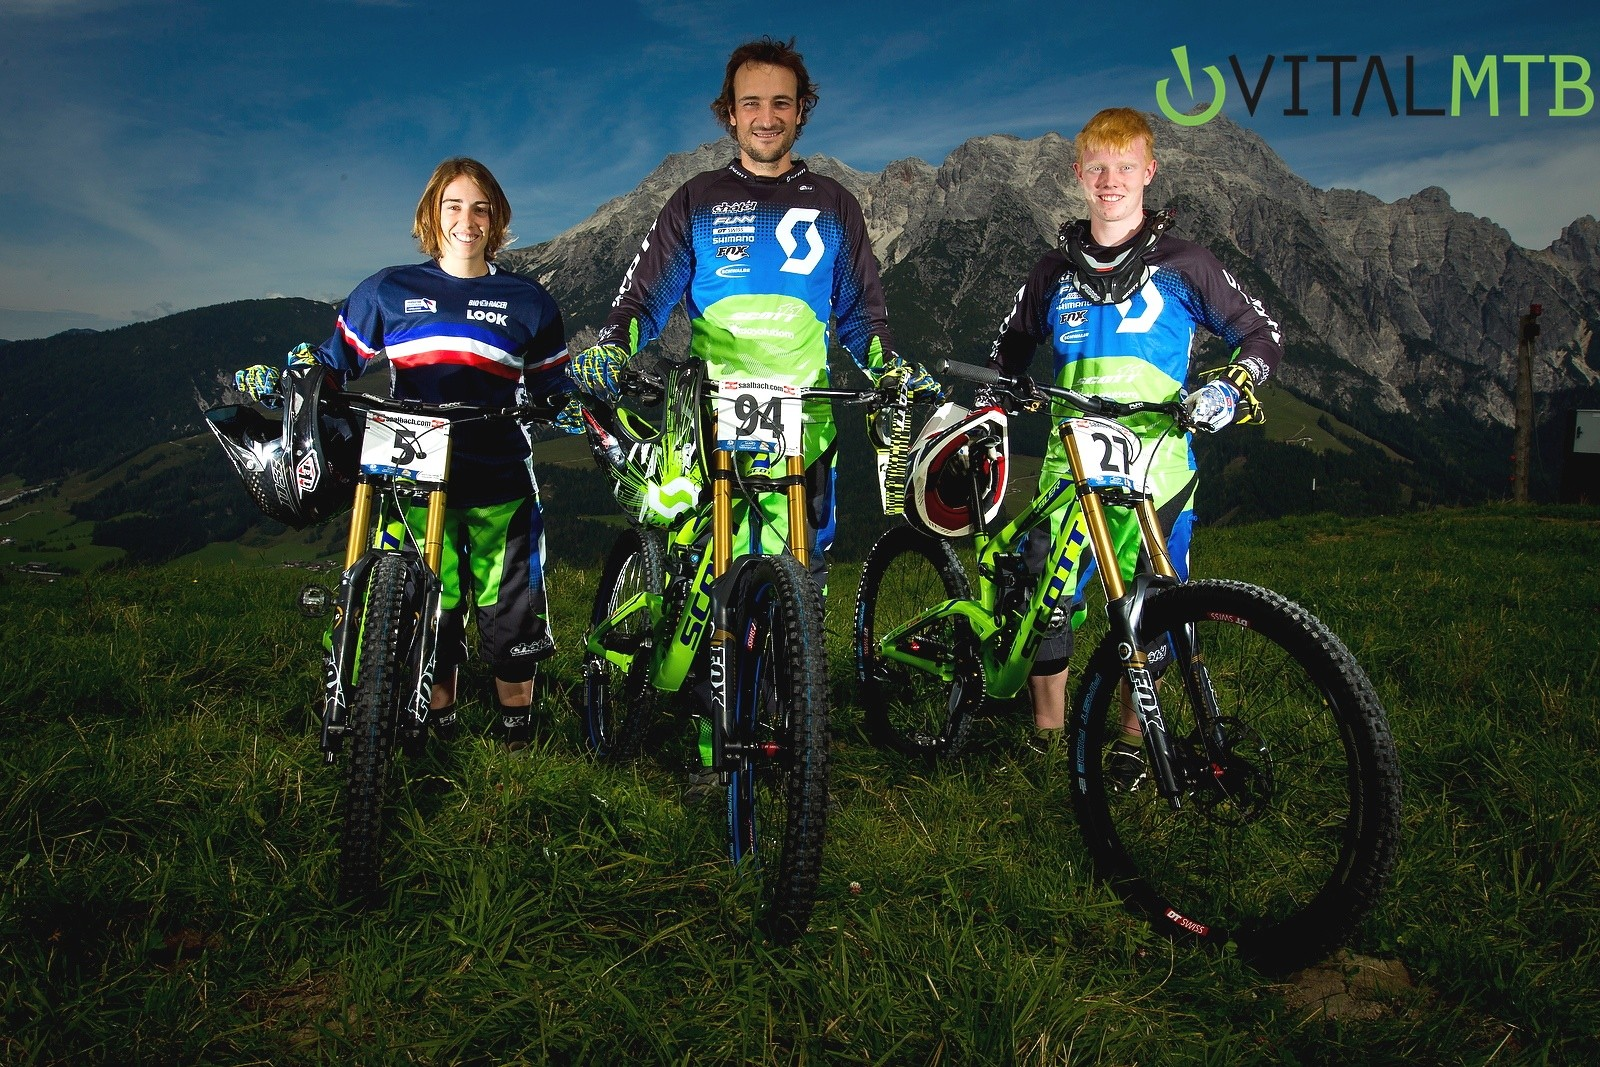 Scott 11 Team at World Champs Not Hiding Something - How Did You Miss It? - Mountain Biking Pictures - Vital MTB